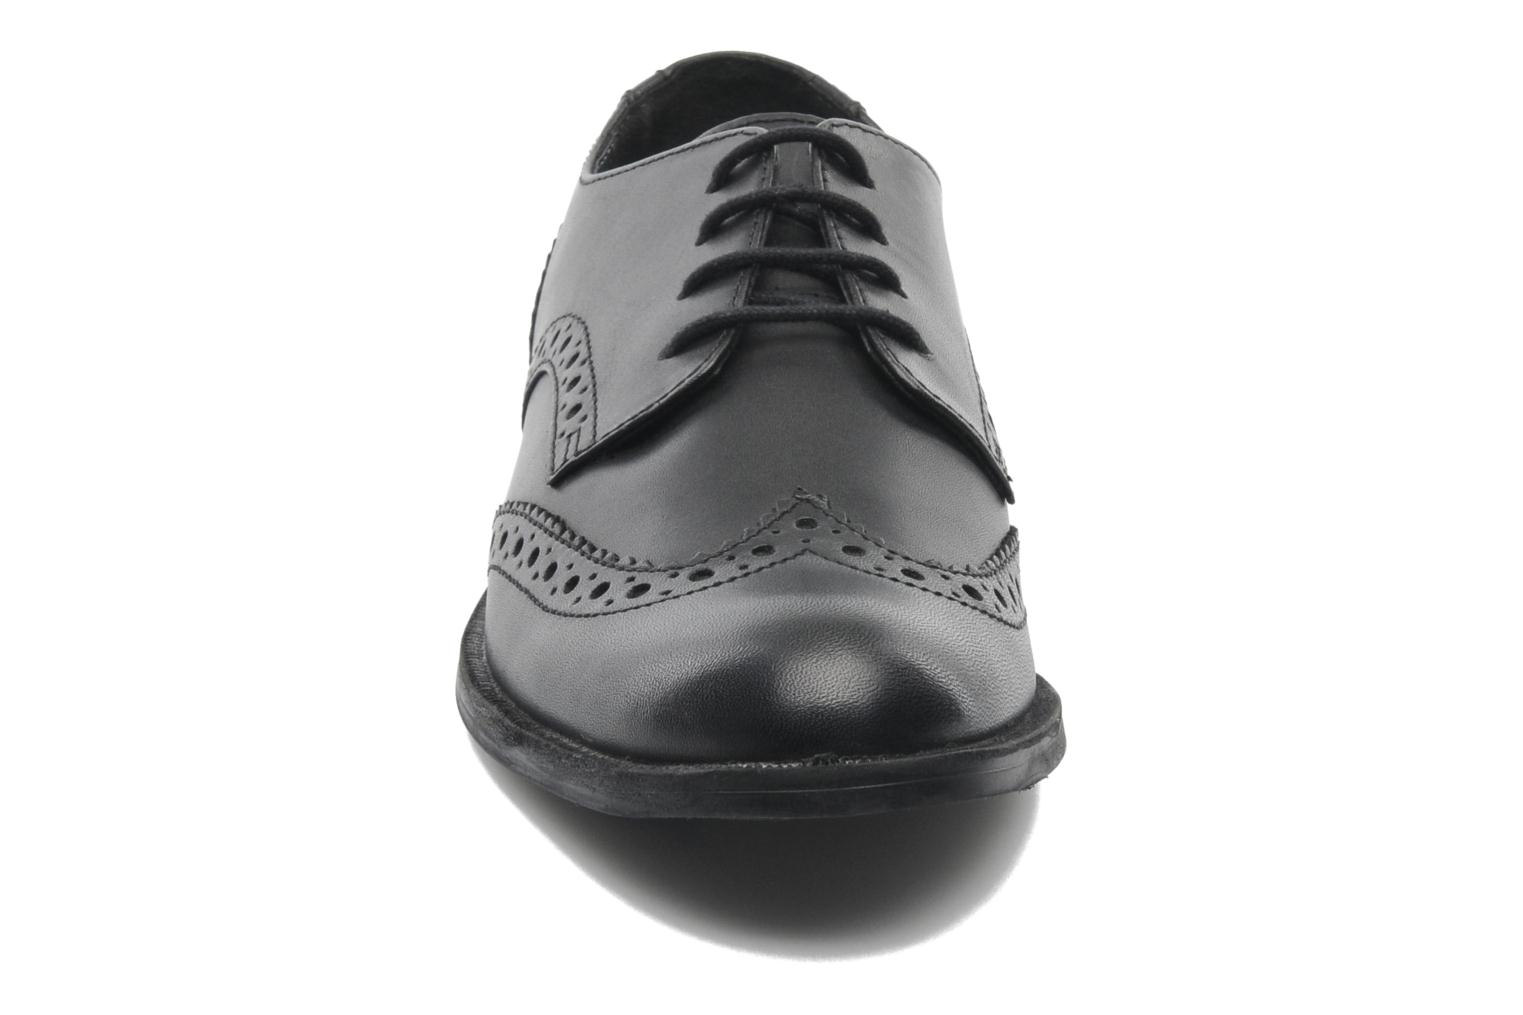 Burford Black leather